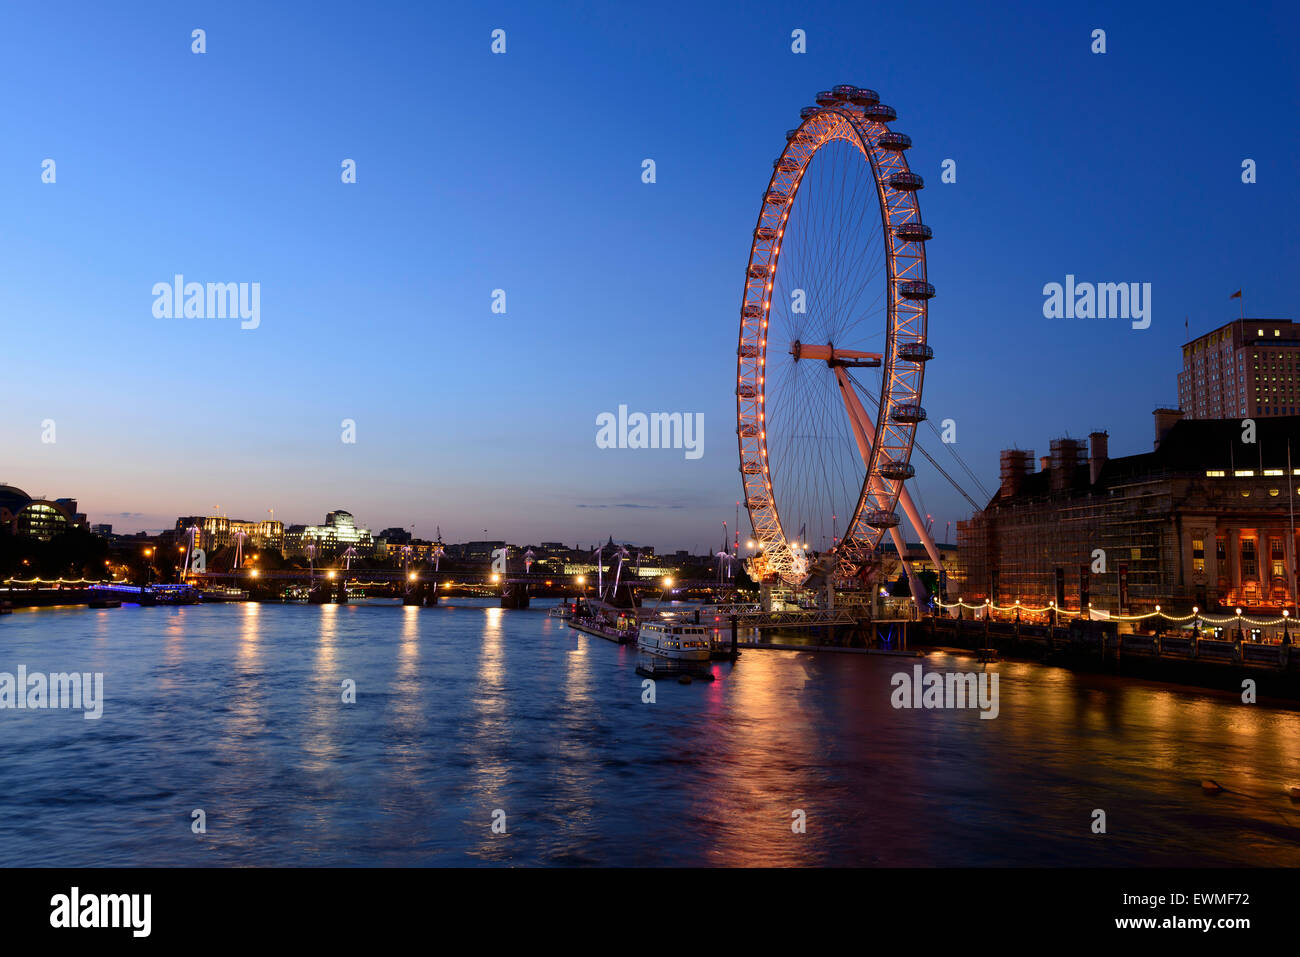 London Eye, Millennium Wheel, London, England, United Kingdom - Stock Image